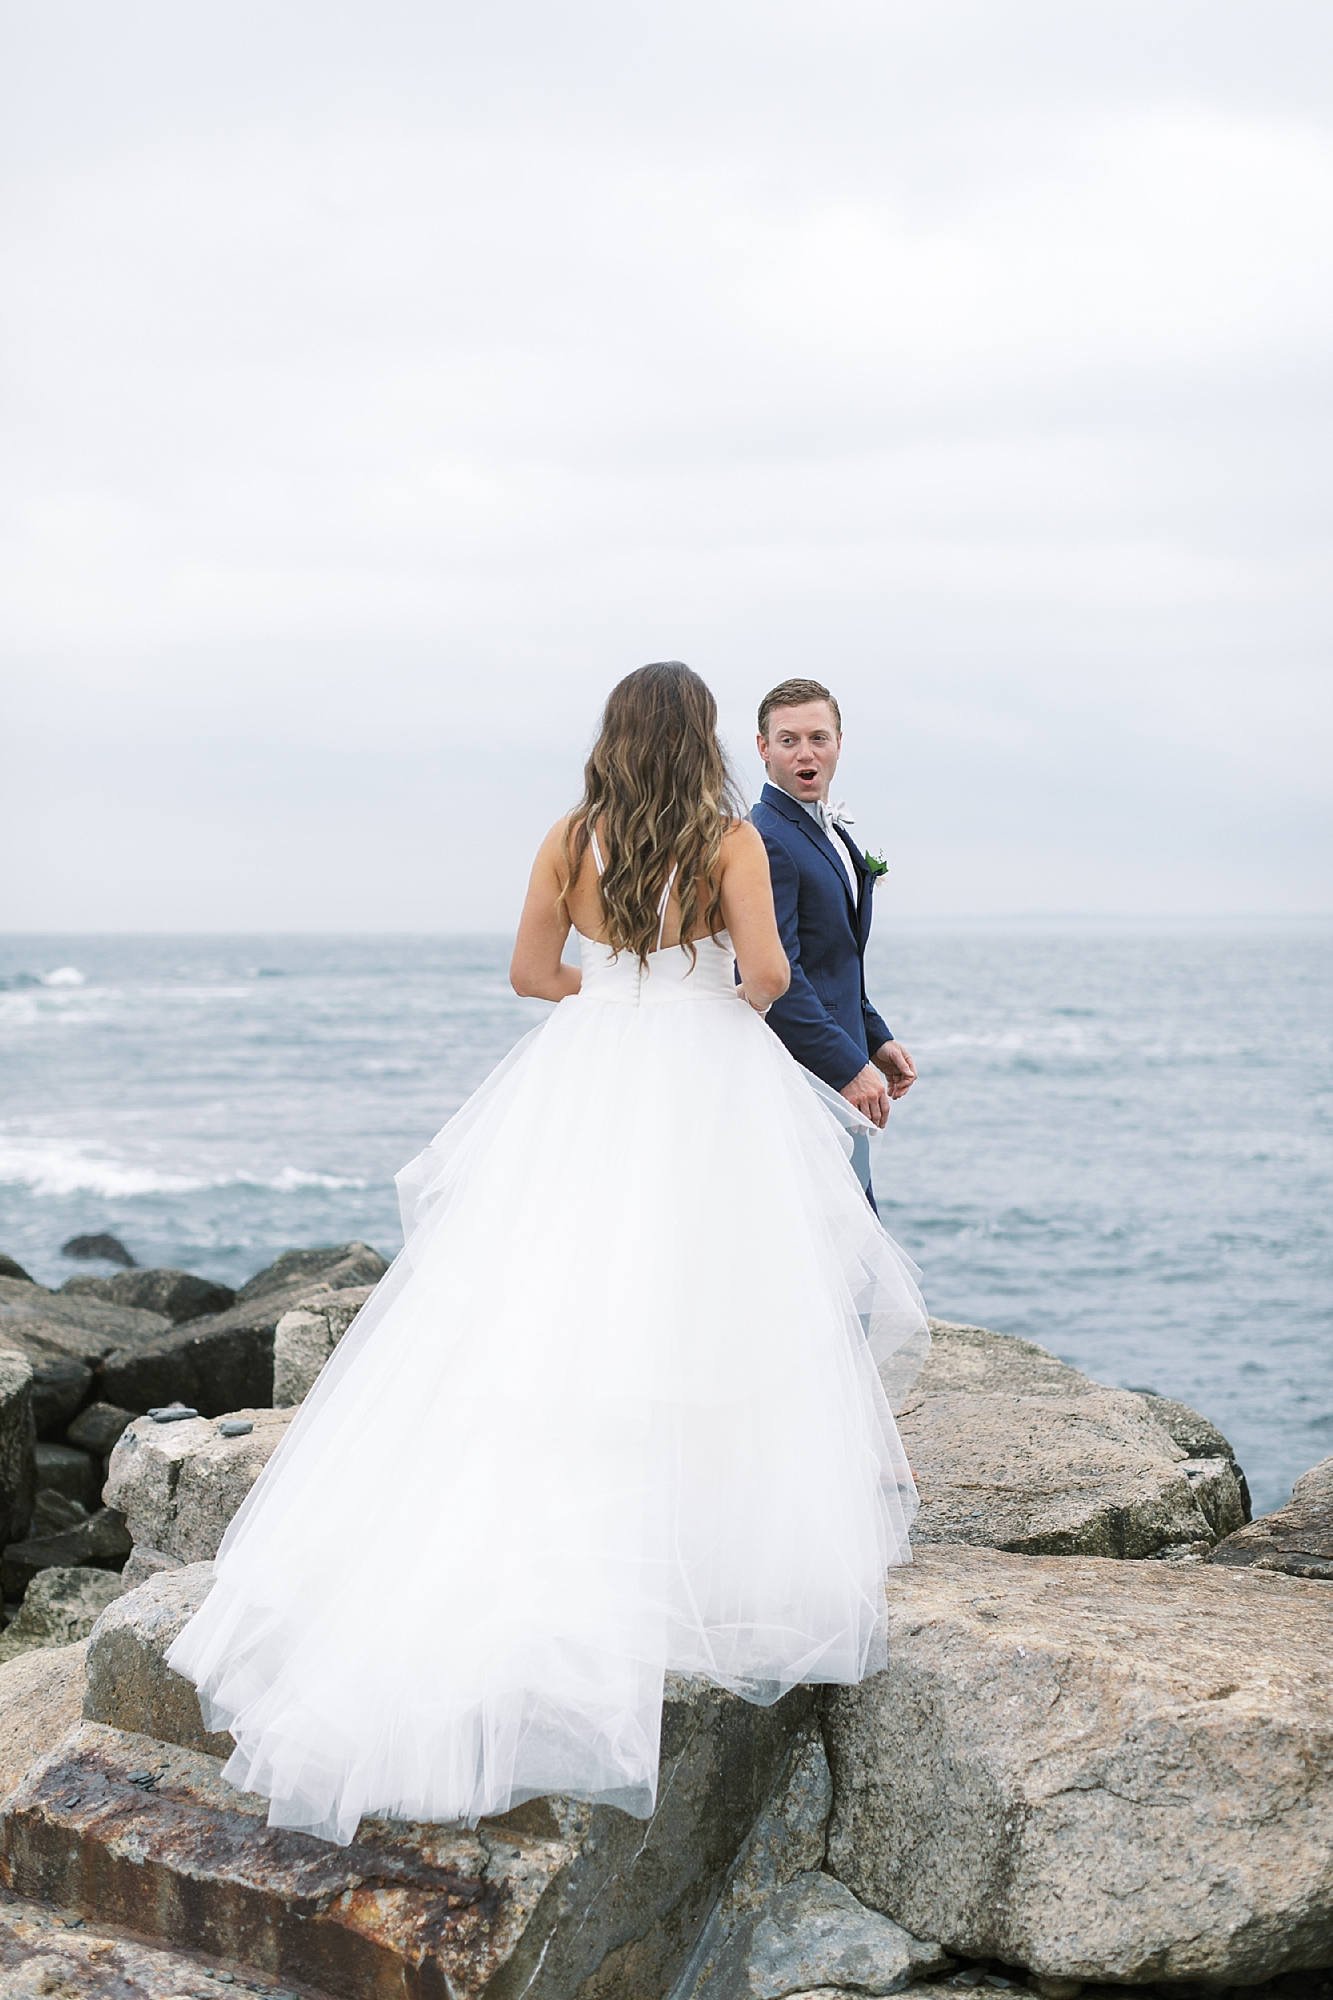 Coastal and Authentic Film Wedding Photography in Newport Rhode Island by Magdalena Studios 0023